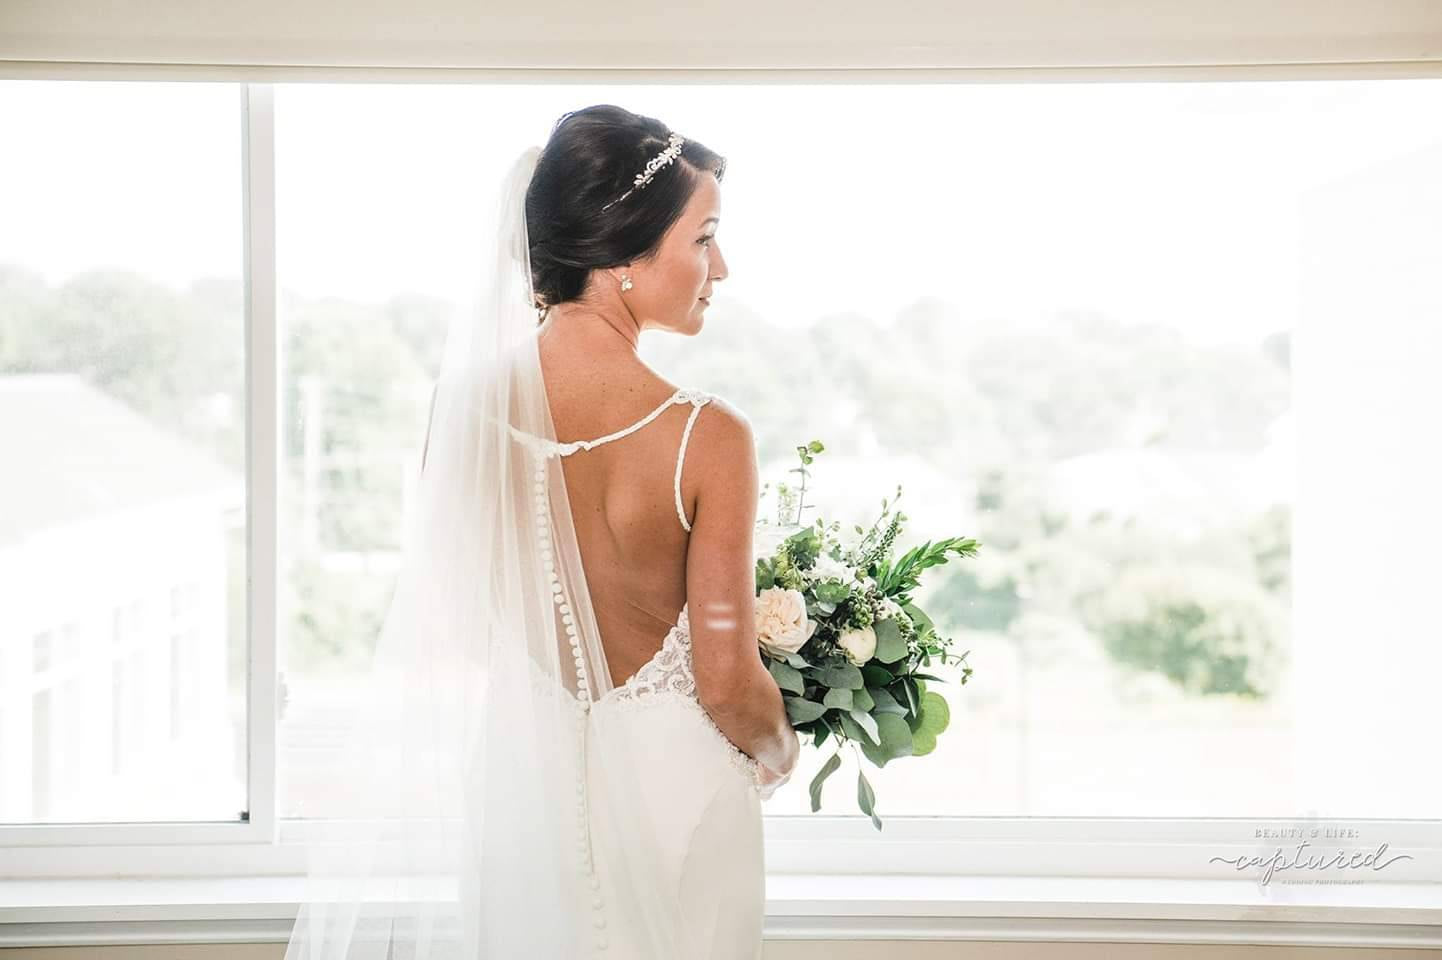 Bride with Low Back Dress, Sheer Wedding Veil, and White Bouquet